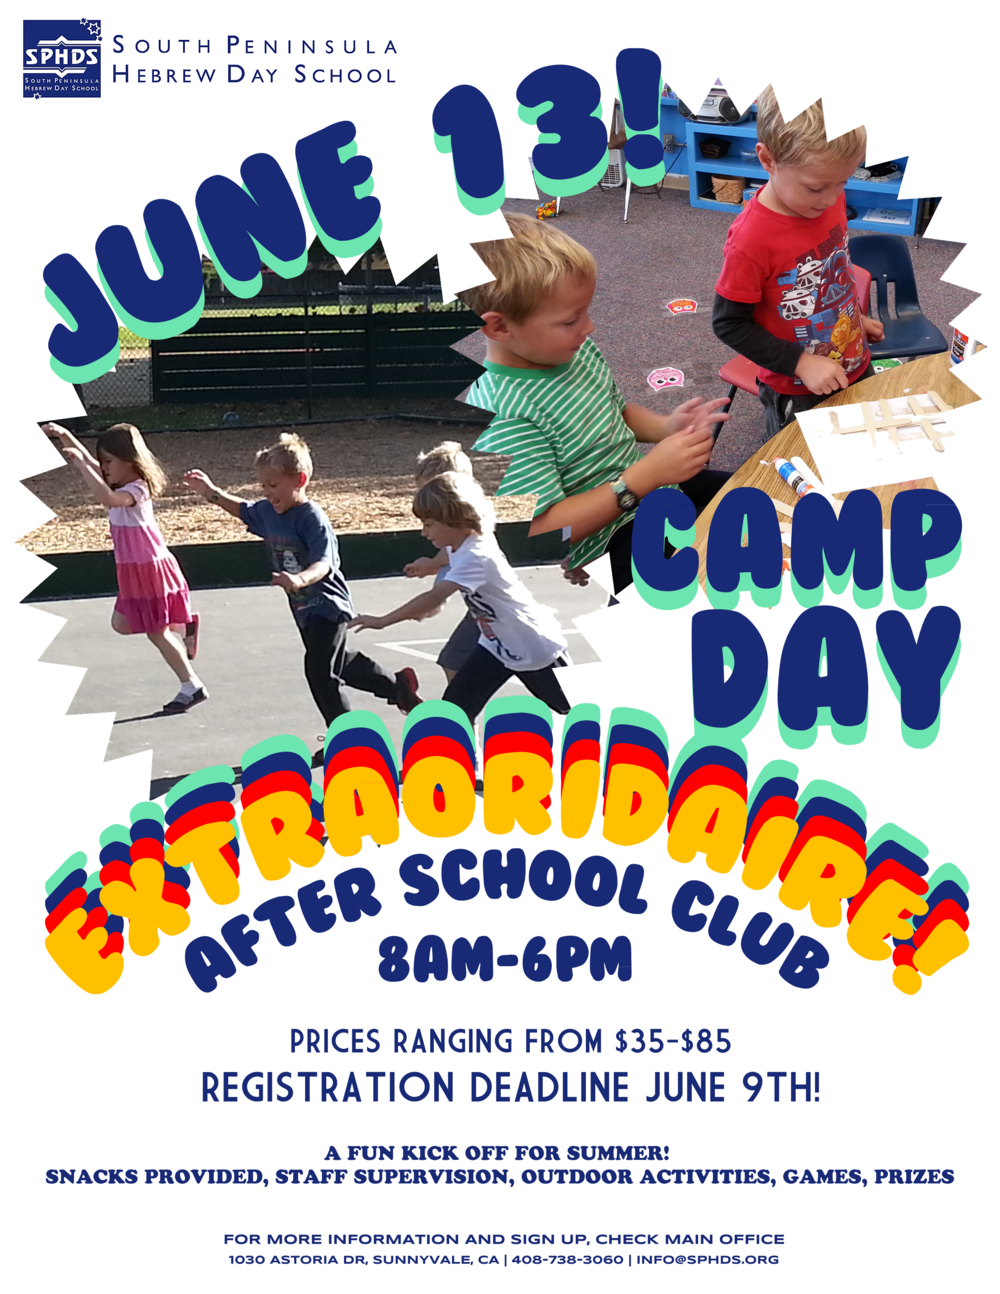 CampDay_20140527.png